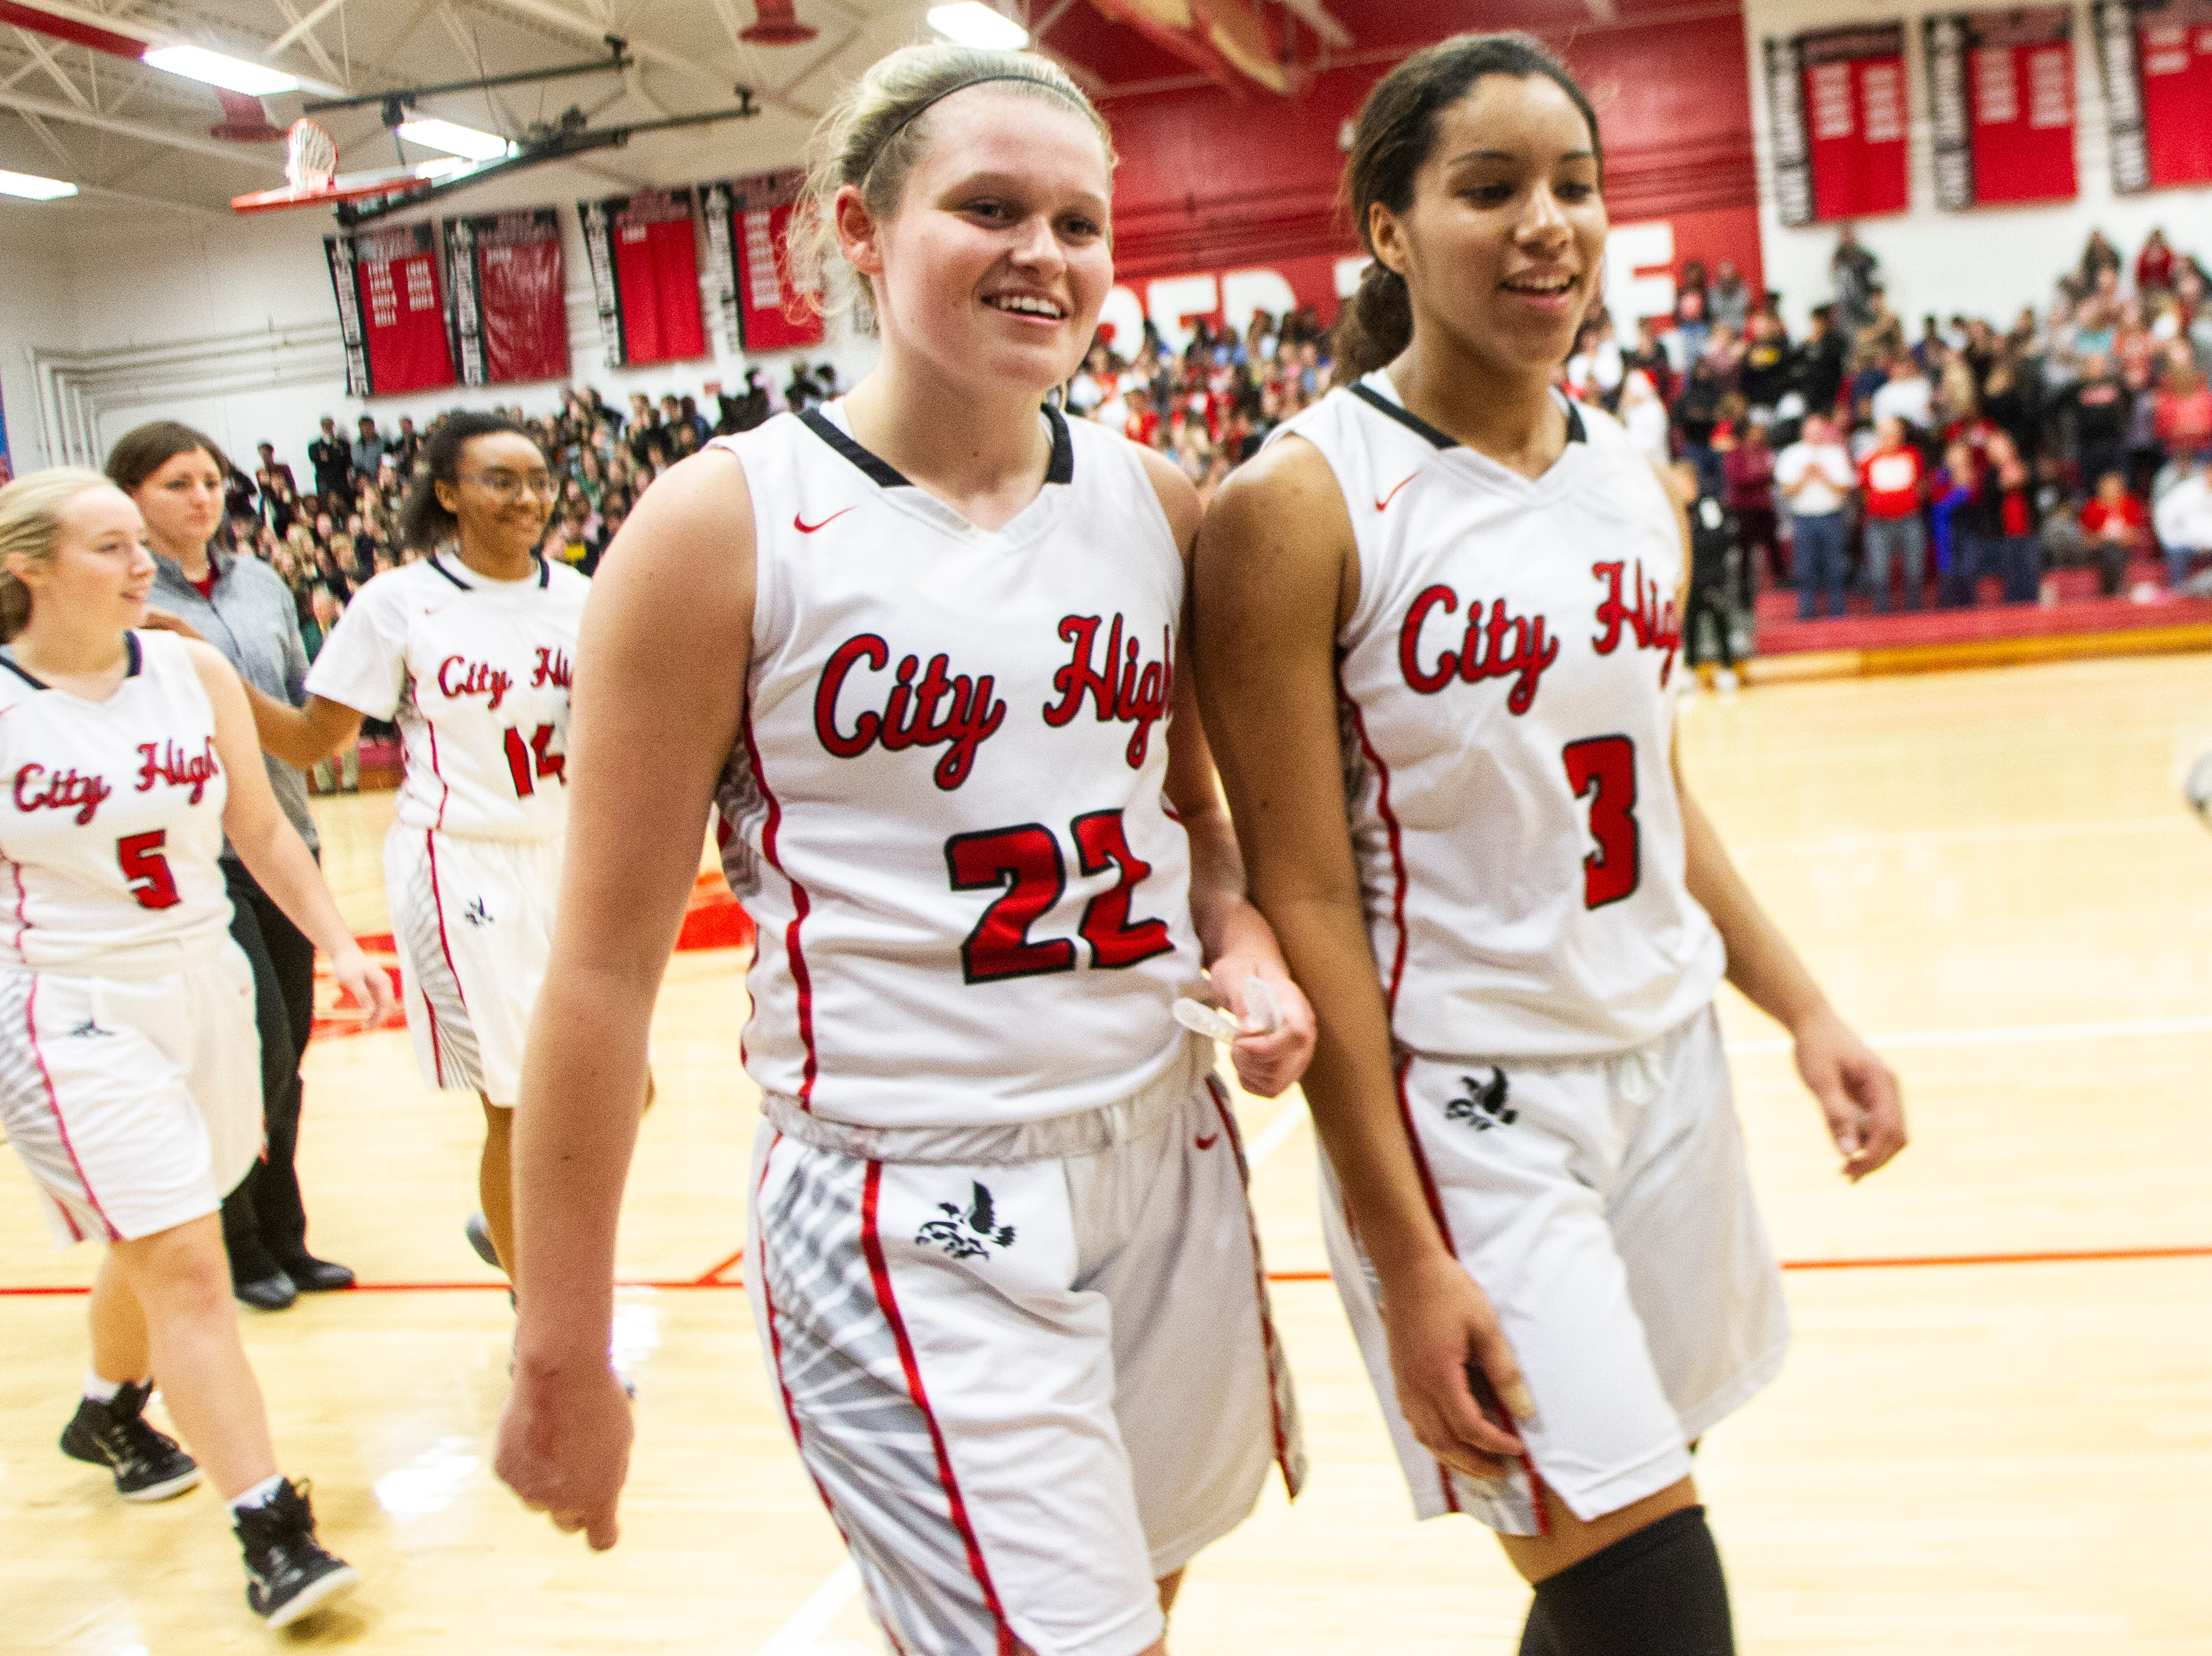 Iowa City High's Paige Rocca (22) and Iowa City High's Rose Nkumu (3) celebrate after a Class 5A girls basketball game on Friday, Dec. 7, 2018, at City High School in Iowa City. The Little Hawks defeated the Women of Troy, 64-57.